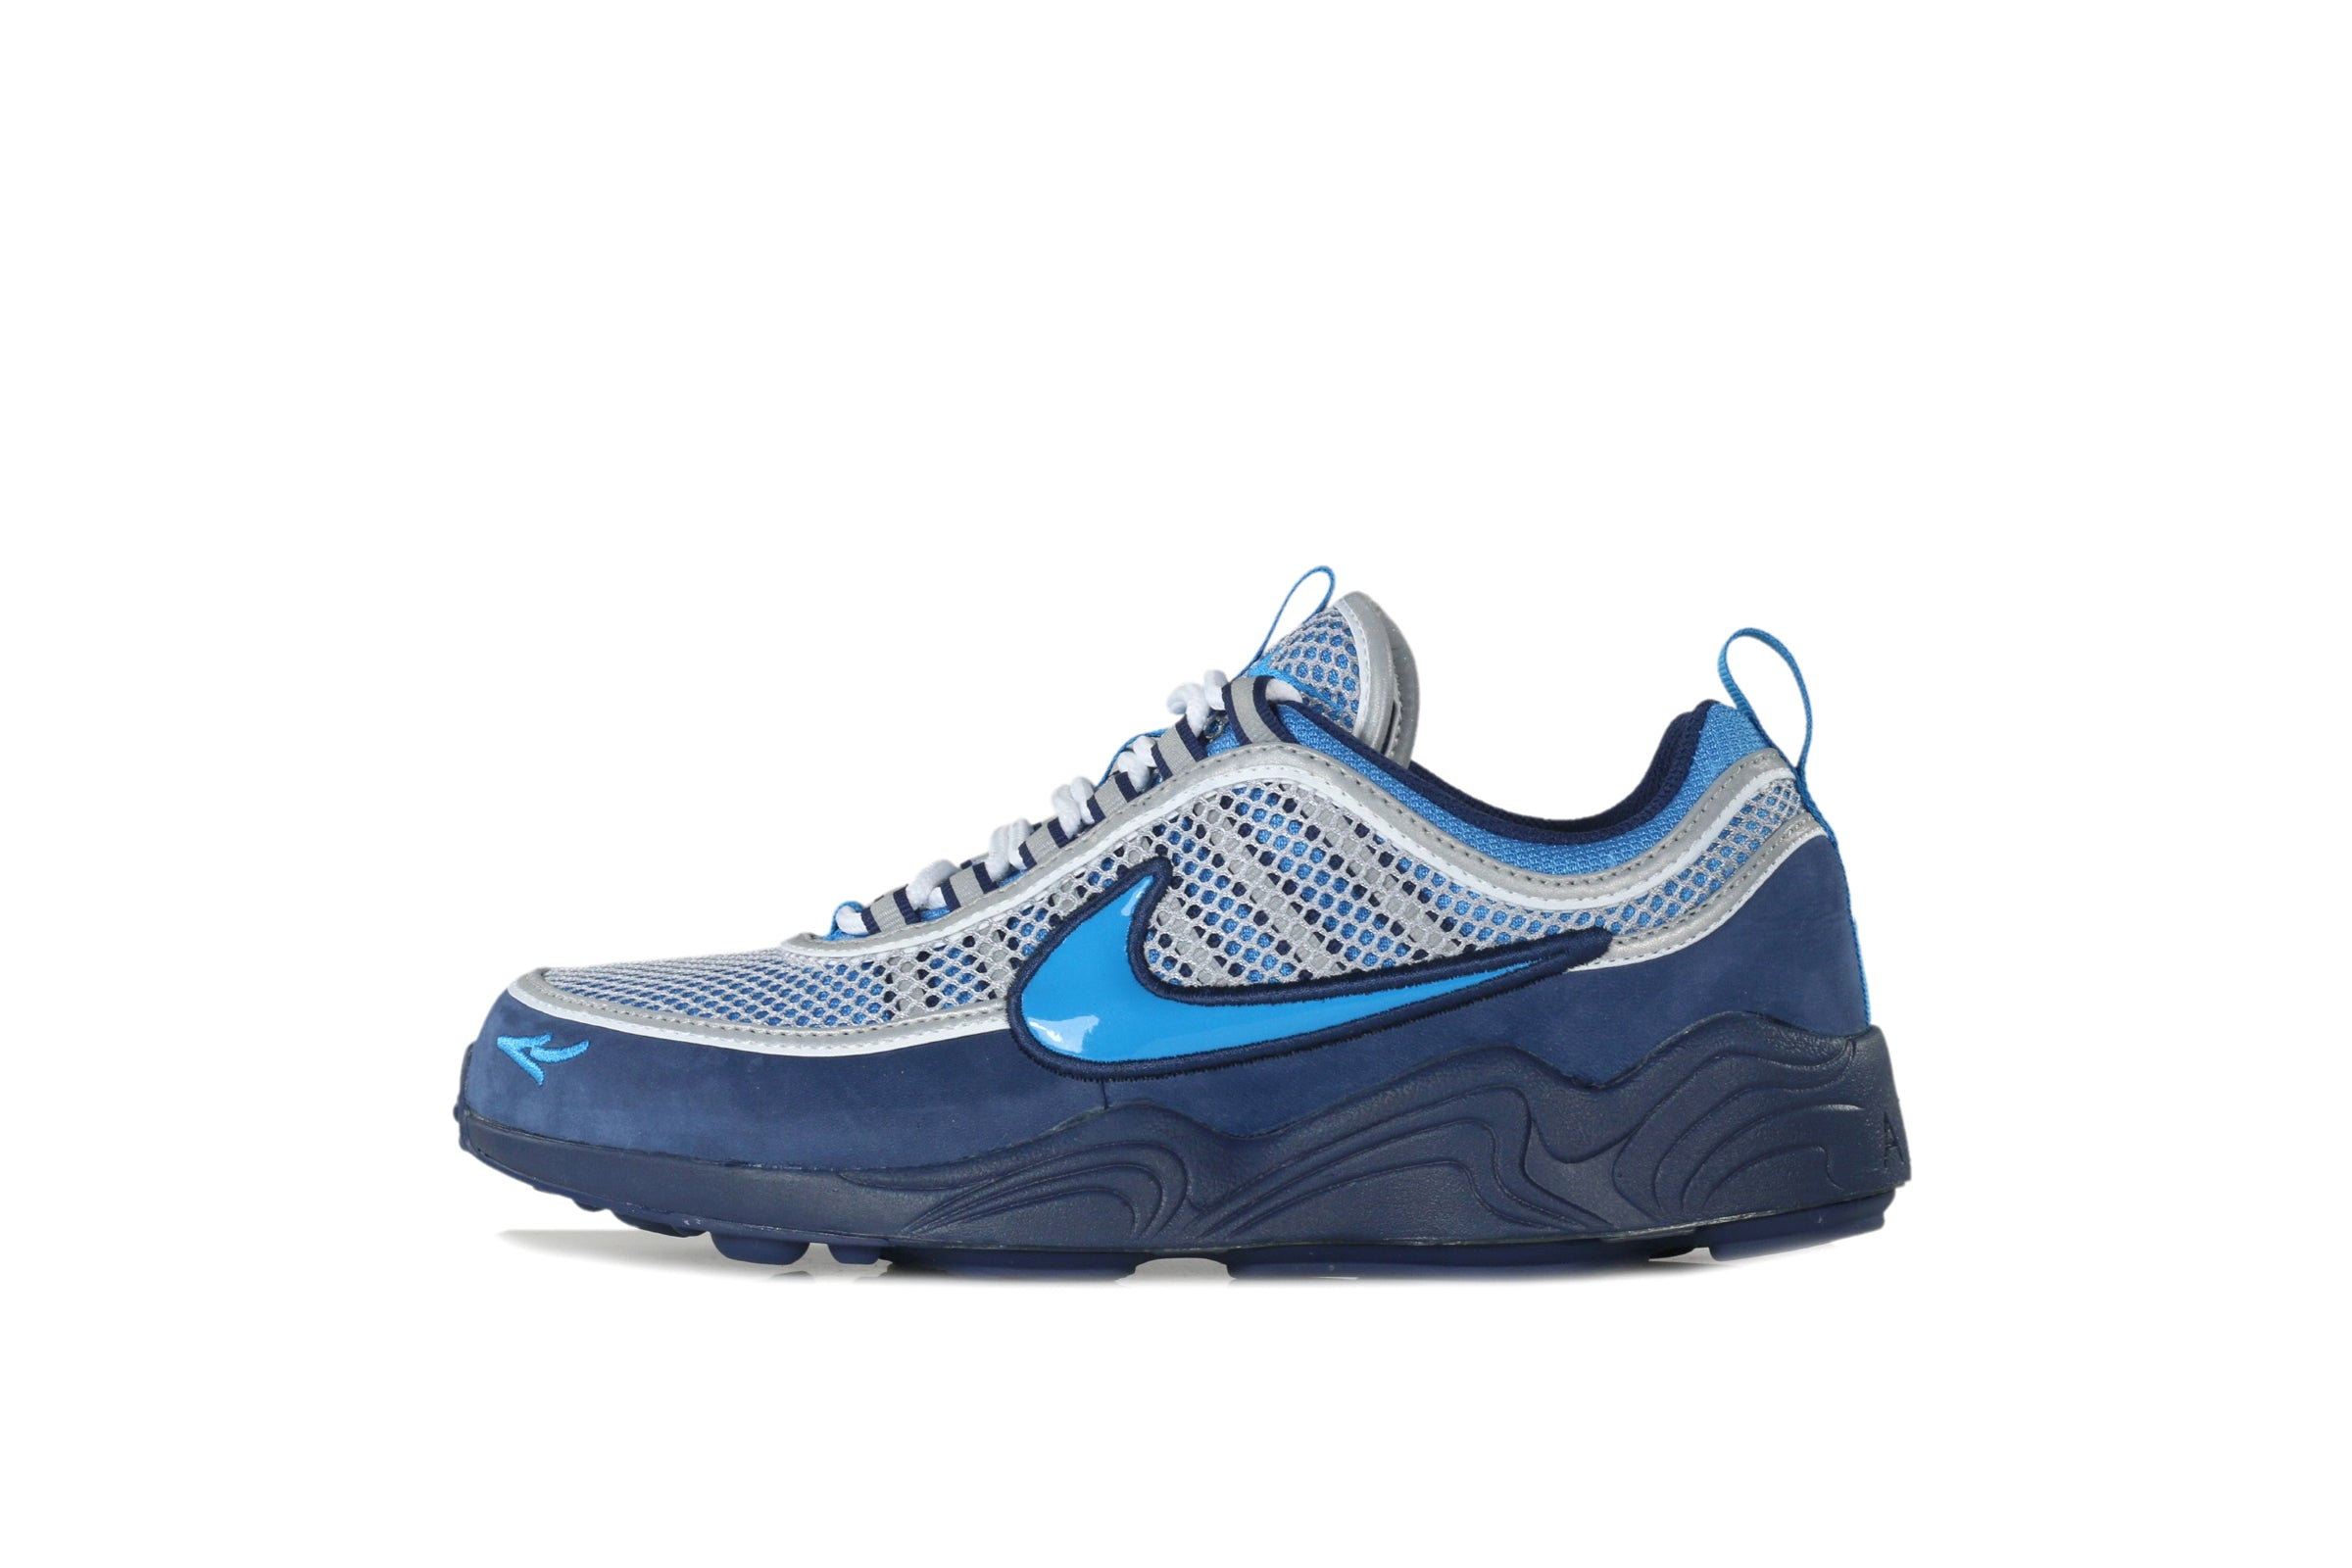 Nike Lab Air Zoom Spiridon '16 SP x Stash